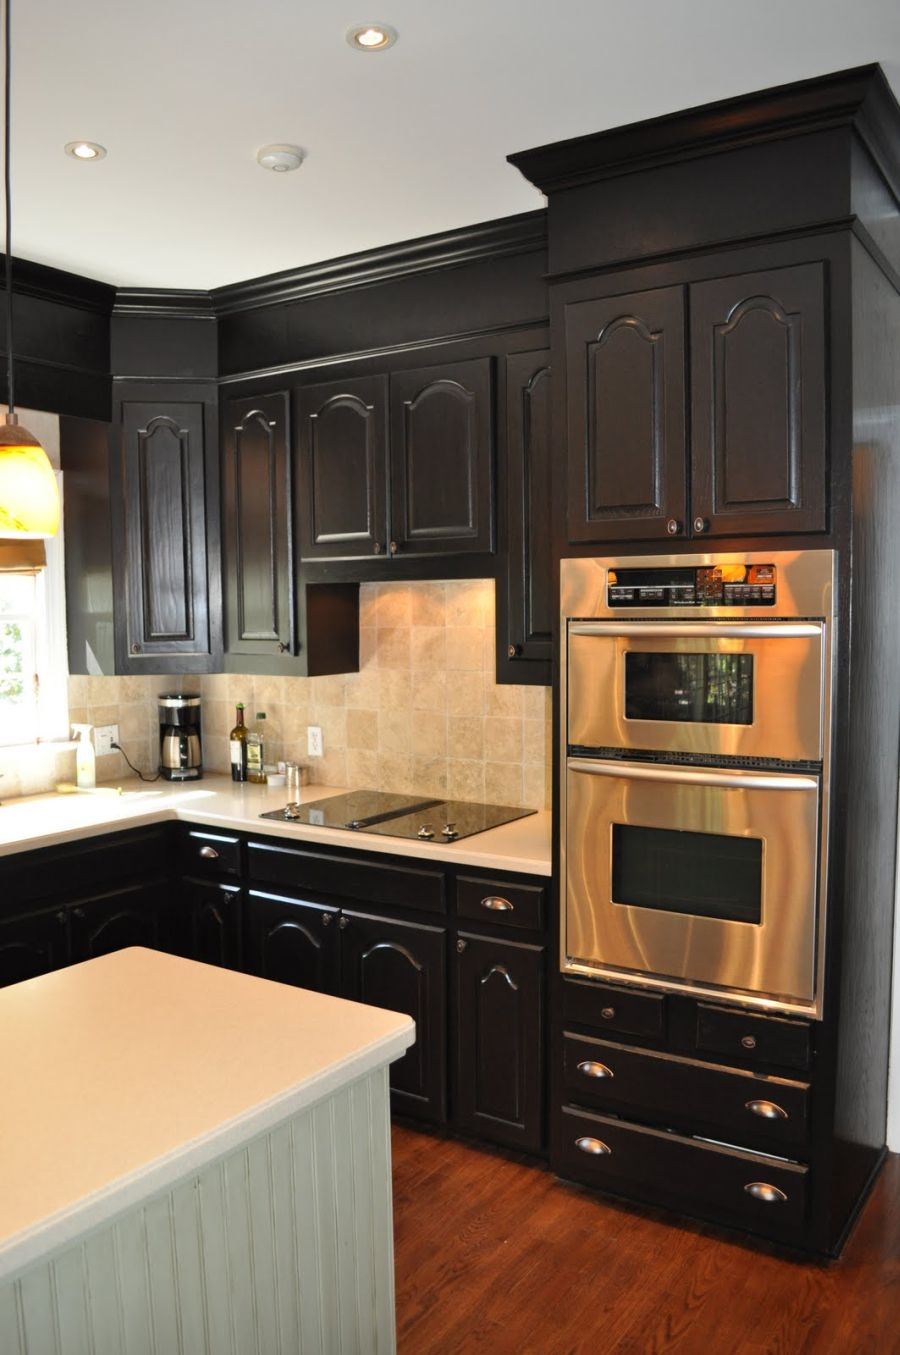 black cabinets kitchen. Black Cabinets with Soffits  One Color Fits Most Kitchen